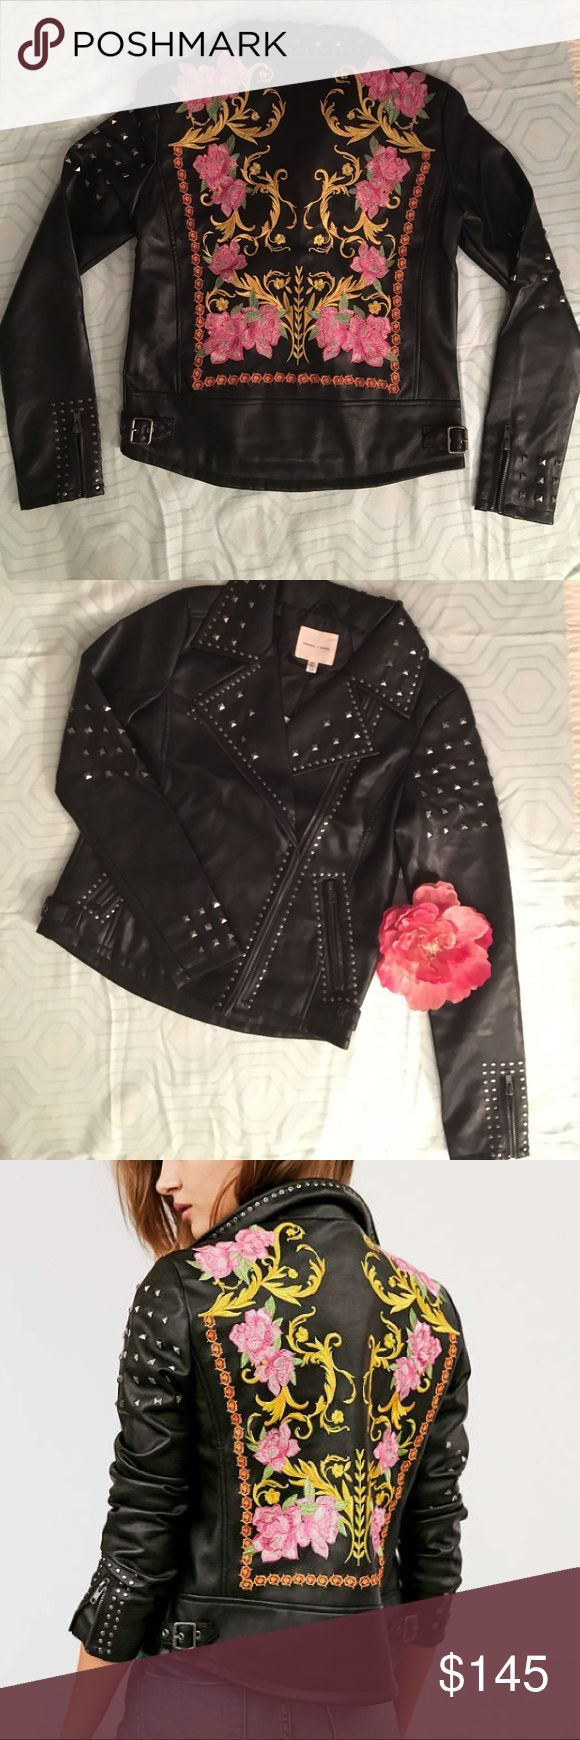 """Last Chance 🌺 LAST Chance to buy this jacket at the lowest sale price. 🆕🌸 Silence + Noise faux leather studded moto jacket with floral embroidered panel on the back. This jacket is so cute and stylish for fall and winter.  Size Xs. True to size. Fits a little cropped. Length from shoulder to hem is about 19.5"""" the back is curved a little at the bottom that measures about 21.5"""" from back of neck/shoulder to hem. Bust- Armpit to armpit is about 35"""". Sleeve is about 23"""" shoulder to cuff. NWT…"""